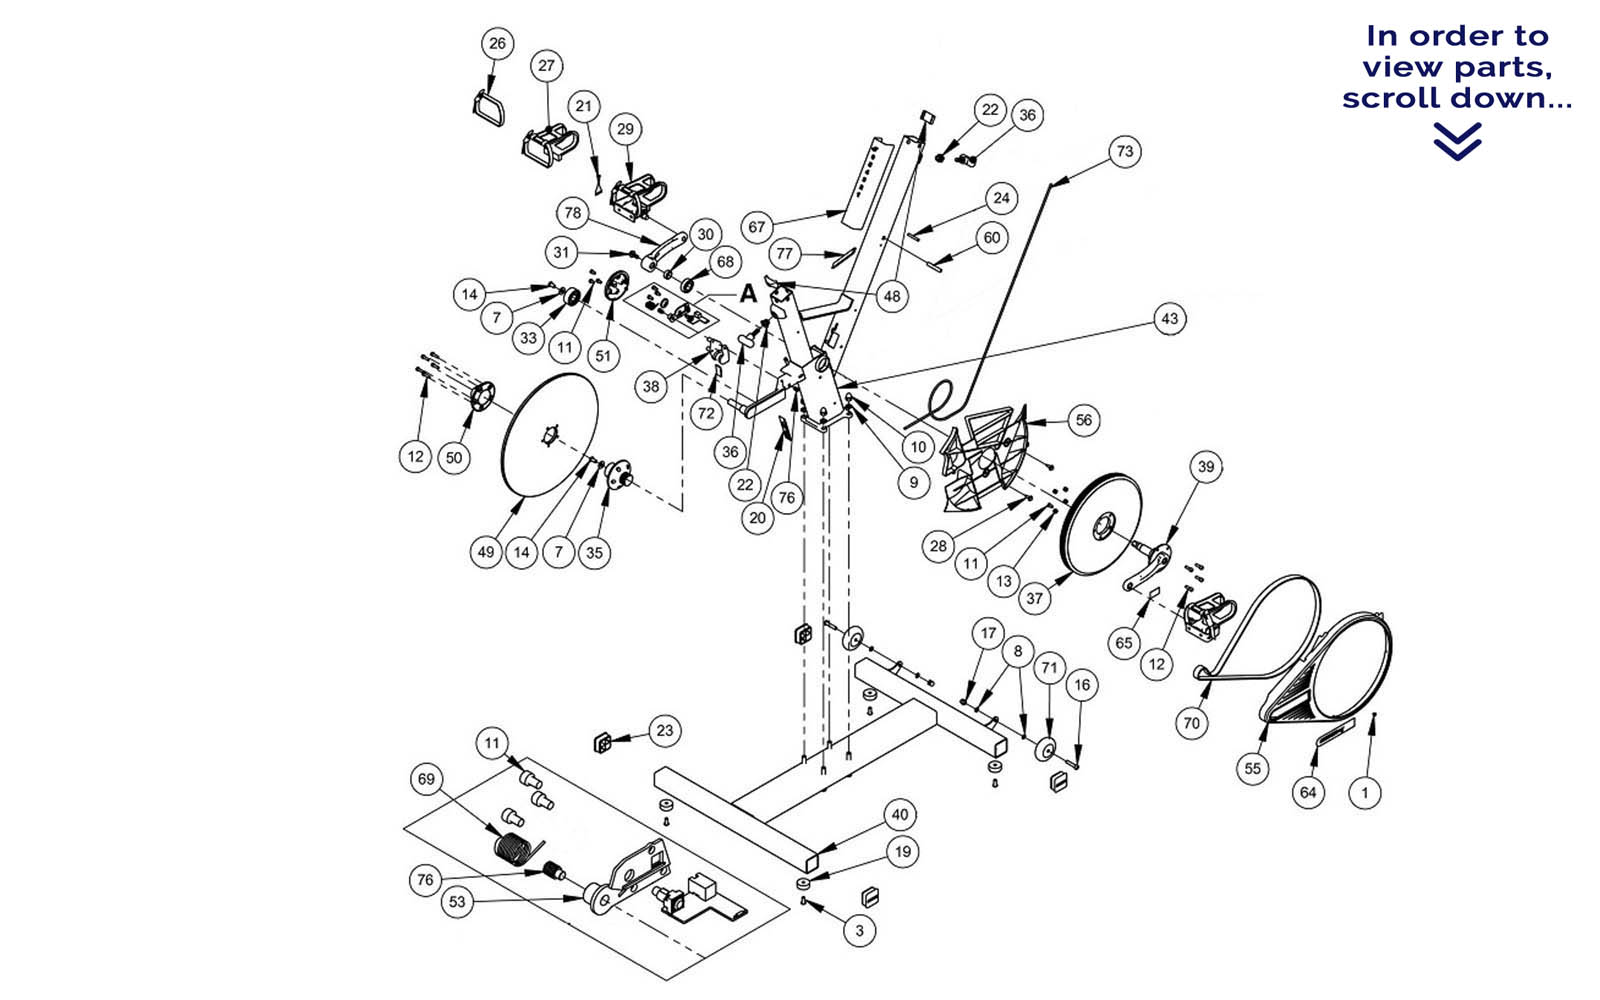 Admirable Keiser M3 Flywheel Crank Parts Scroll Down To View Parts Wiring Digital Resources Indicompassionincorg